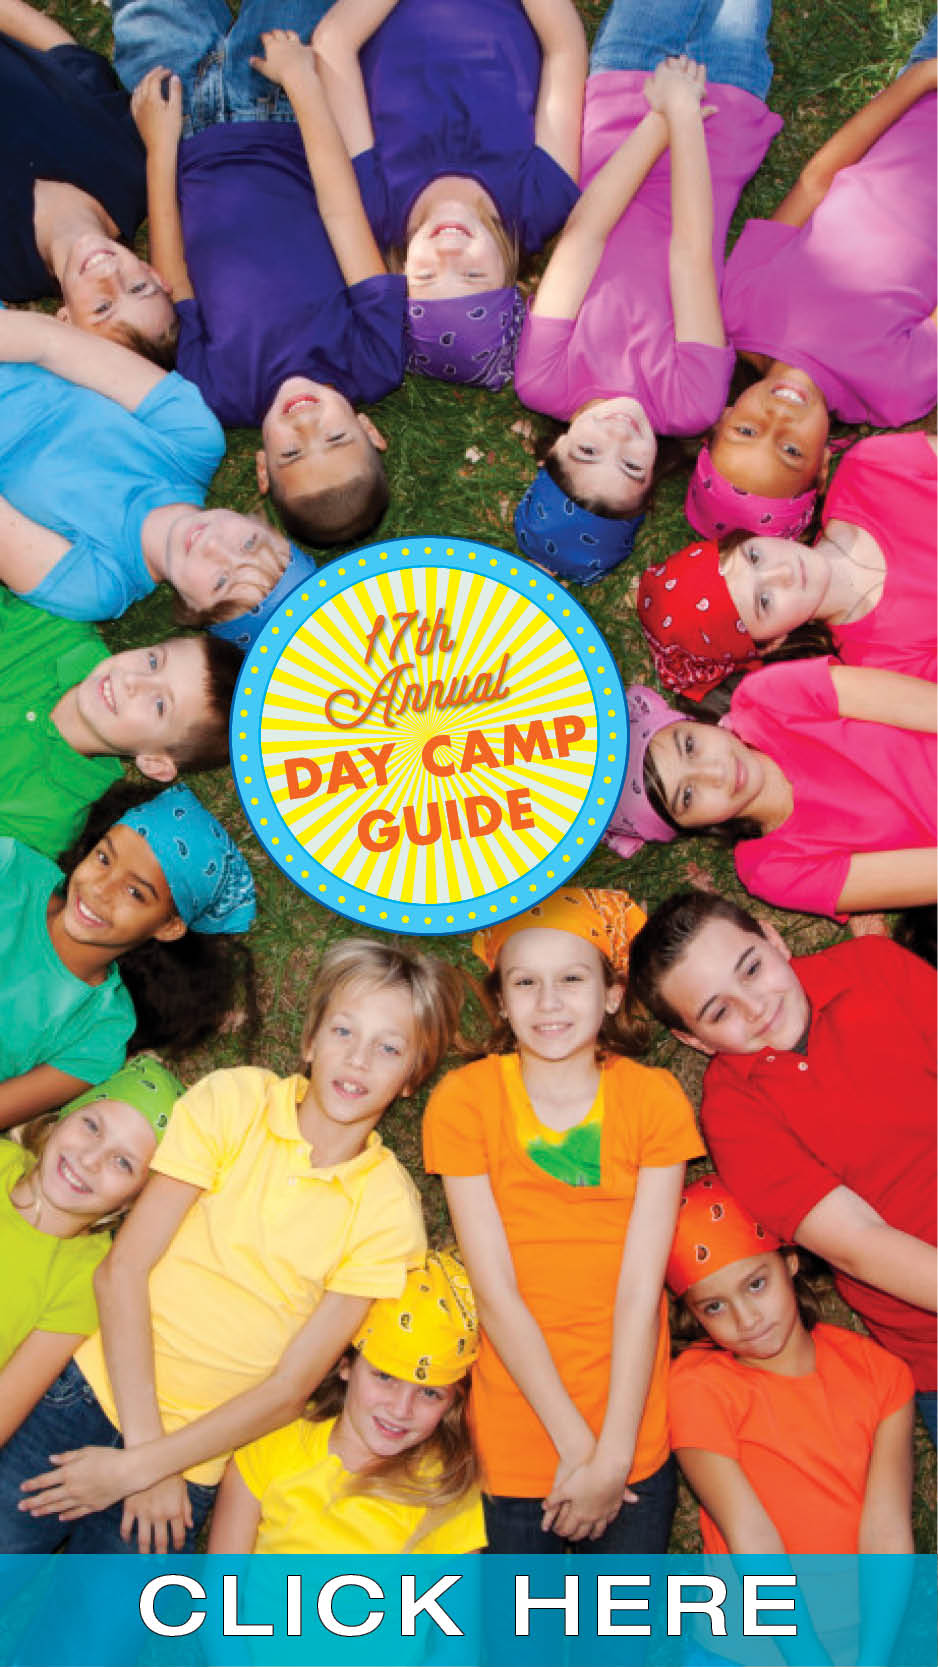 Download the 2018 East Cobber Day Camp Guide